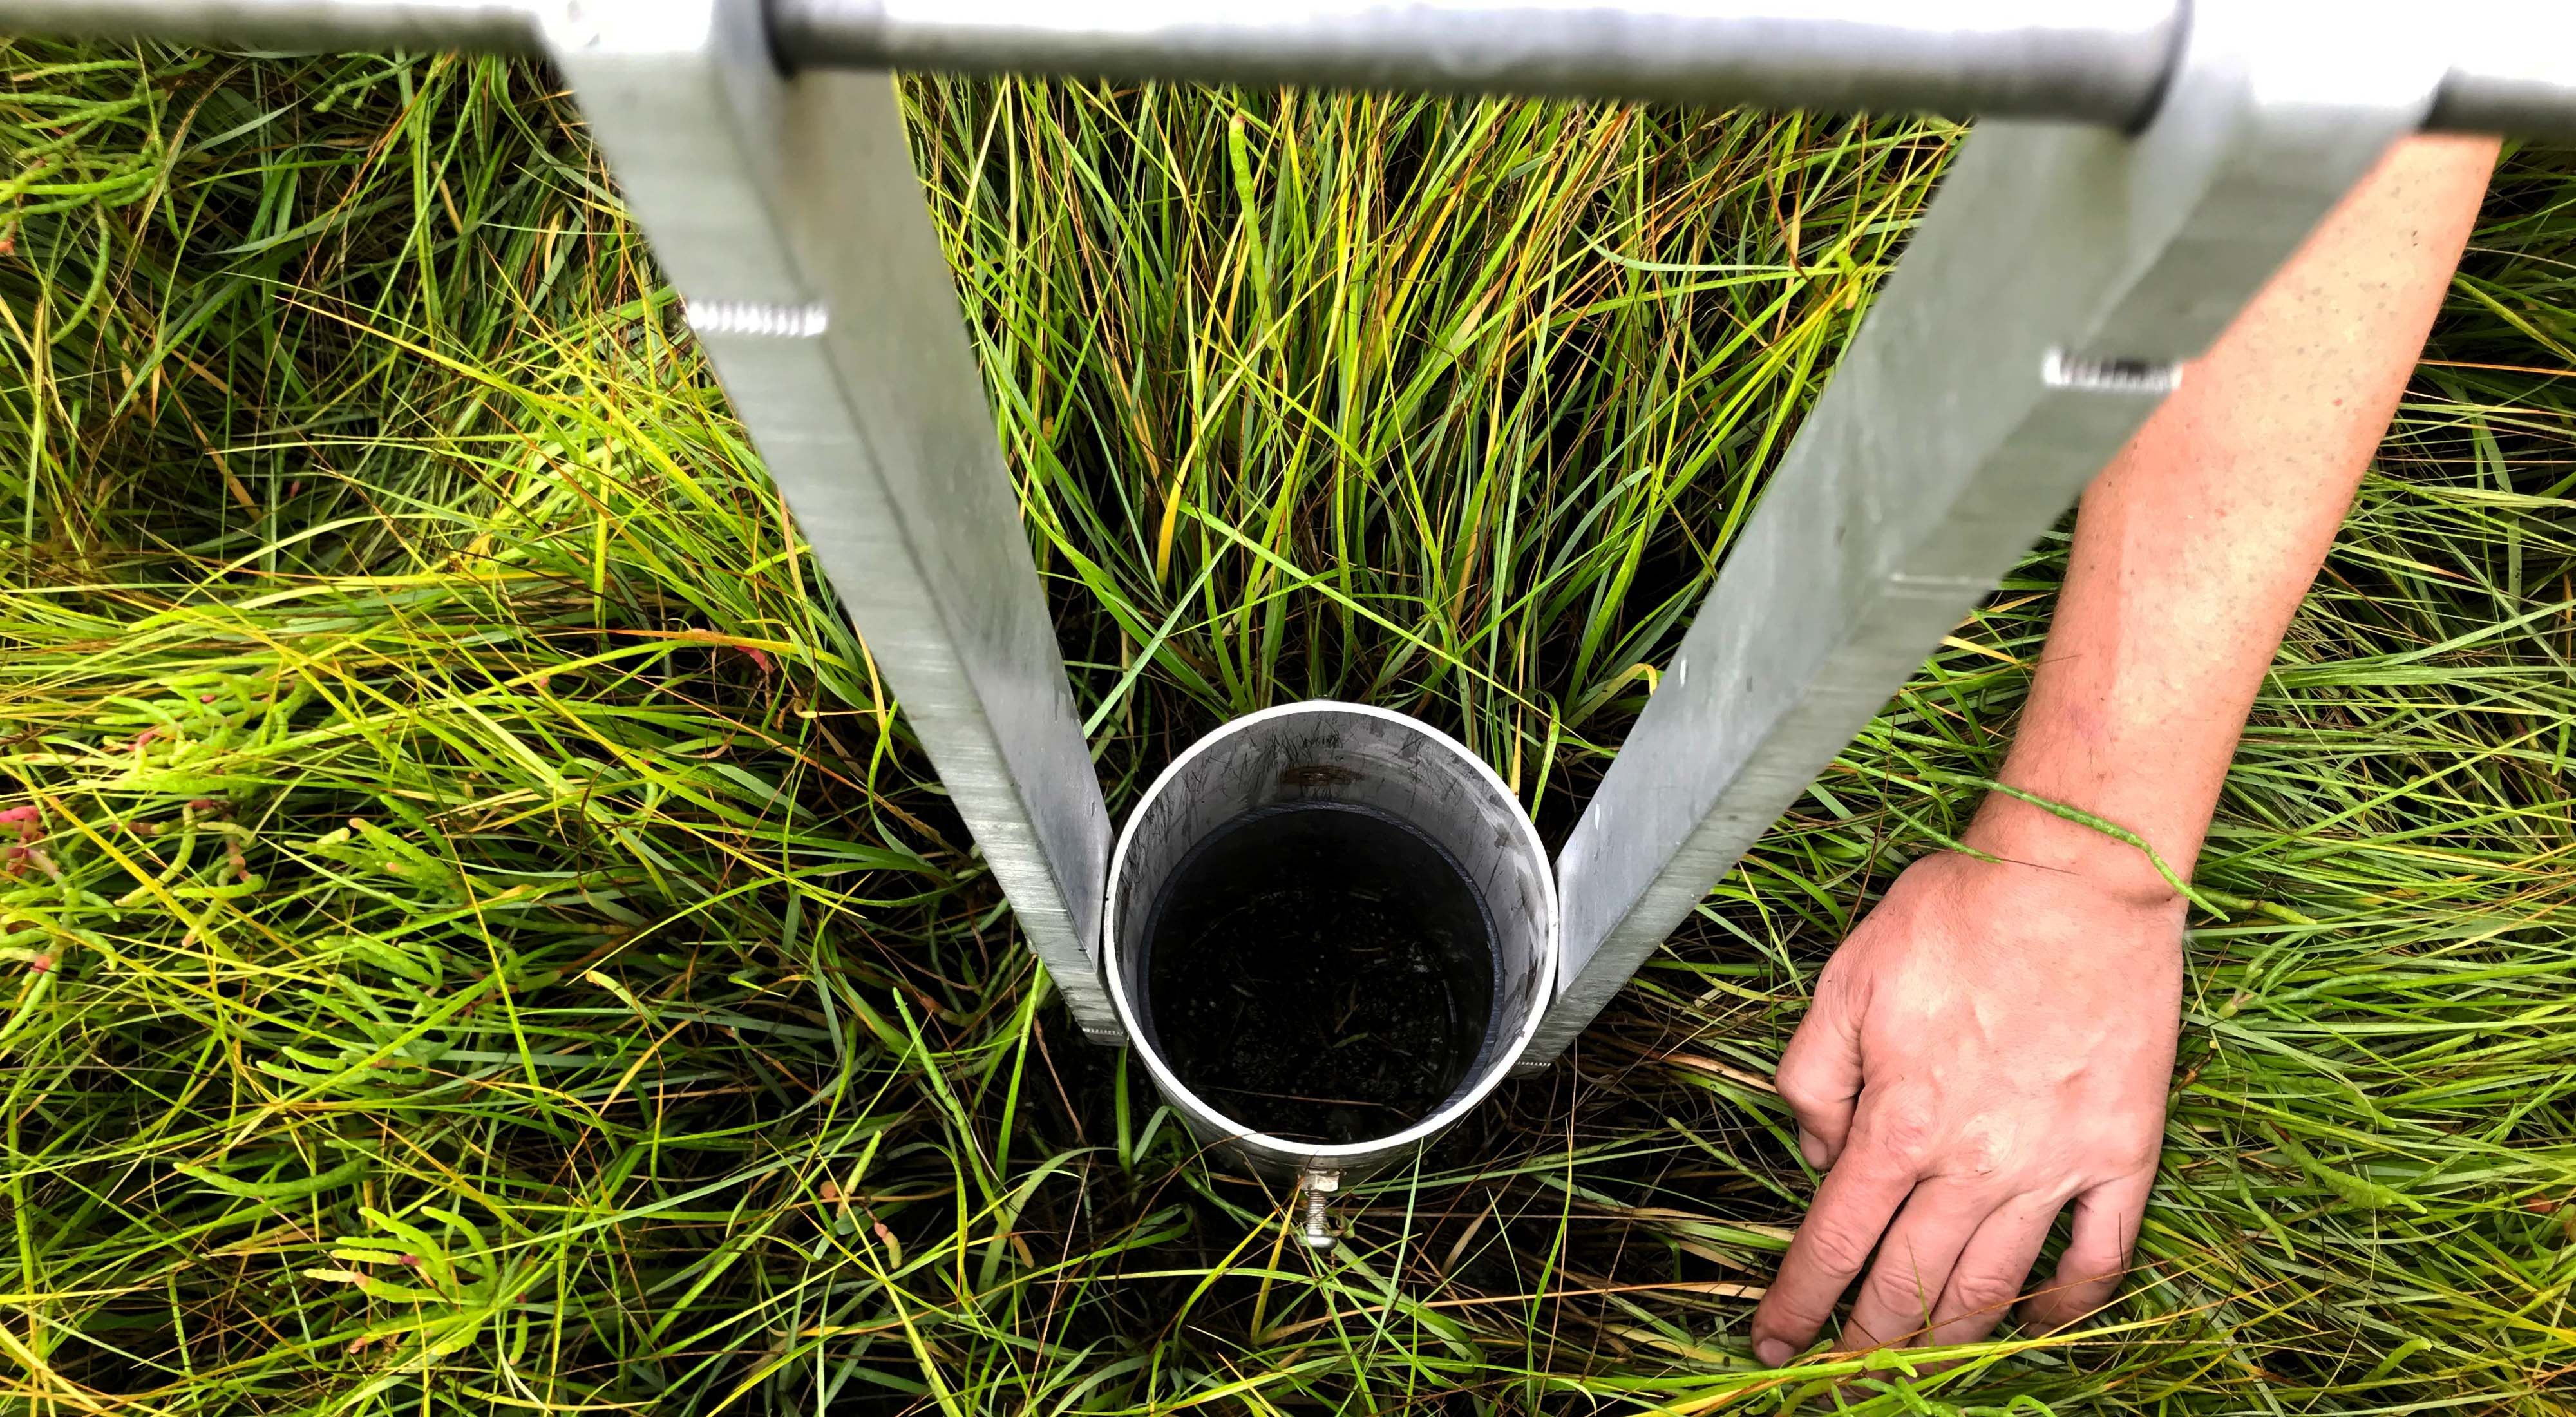 View looking down on a metal cylinder cutting a core sample in salt marsh grass and soil.